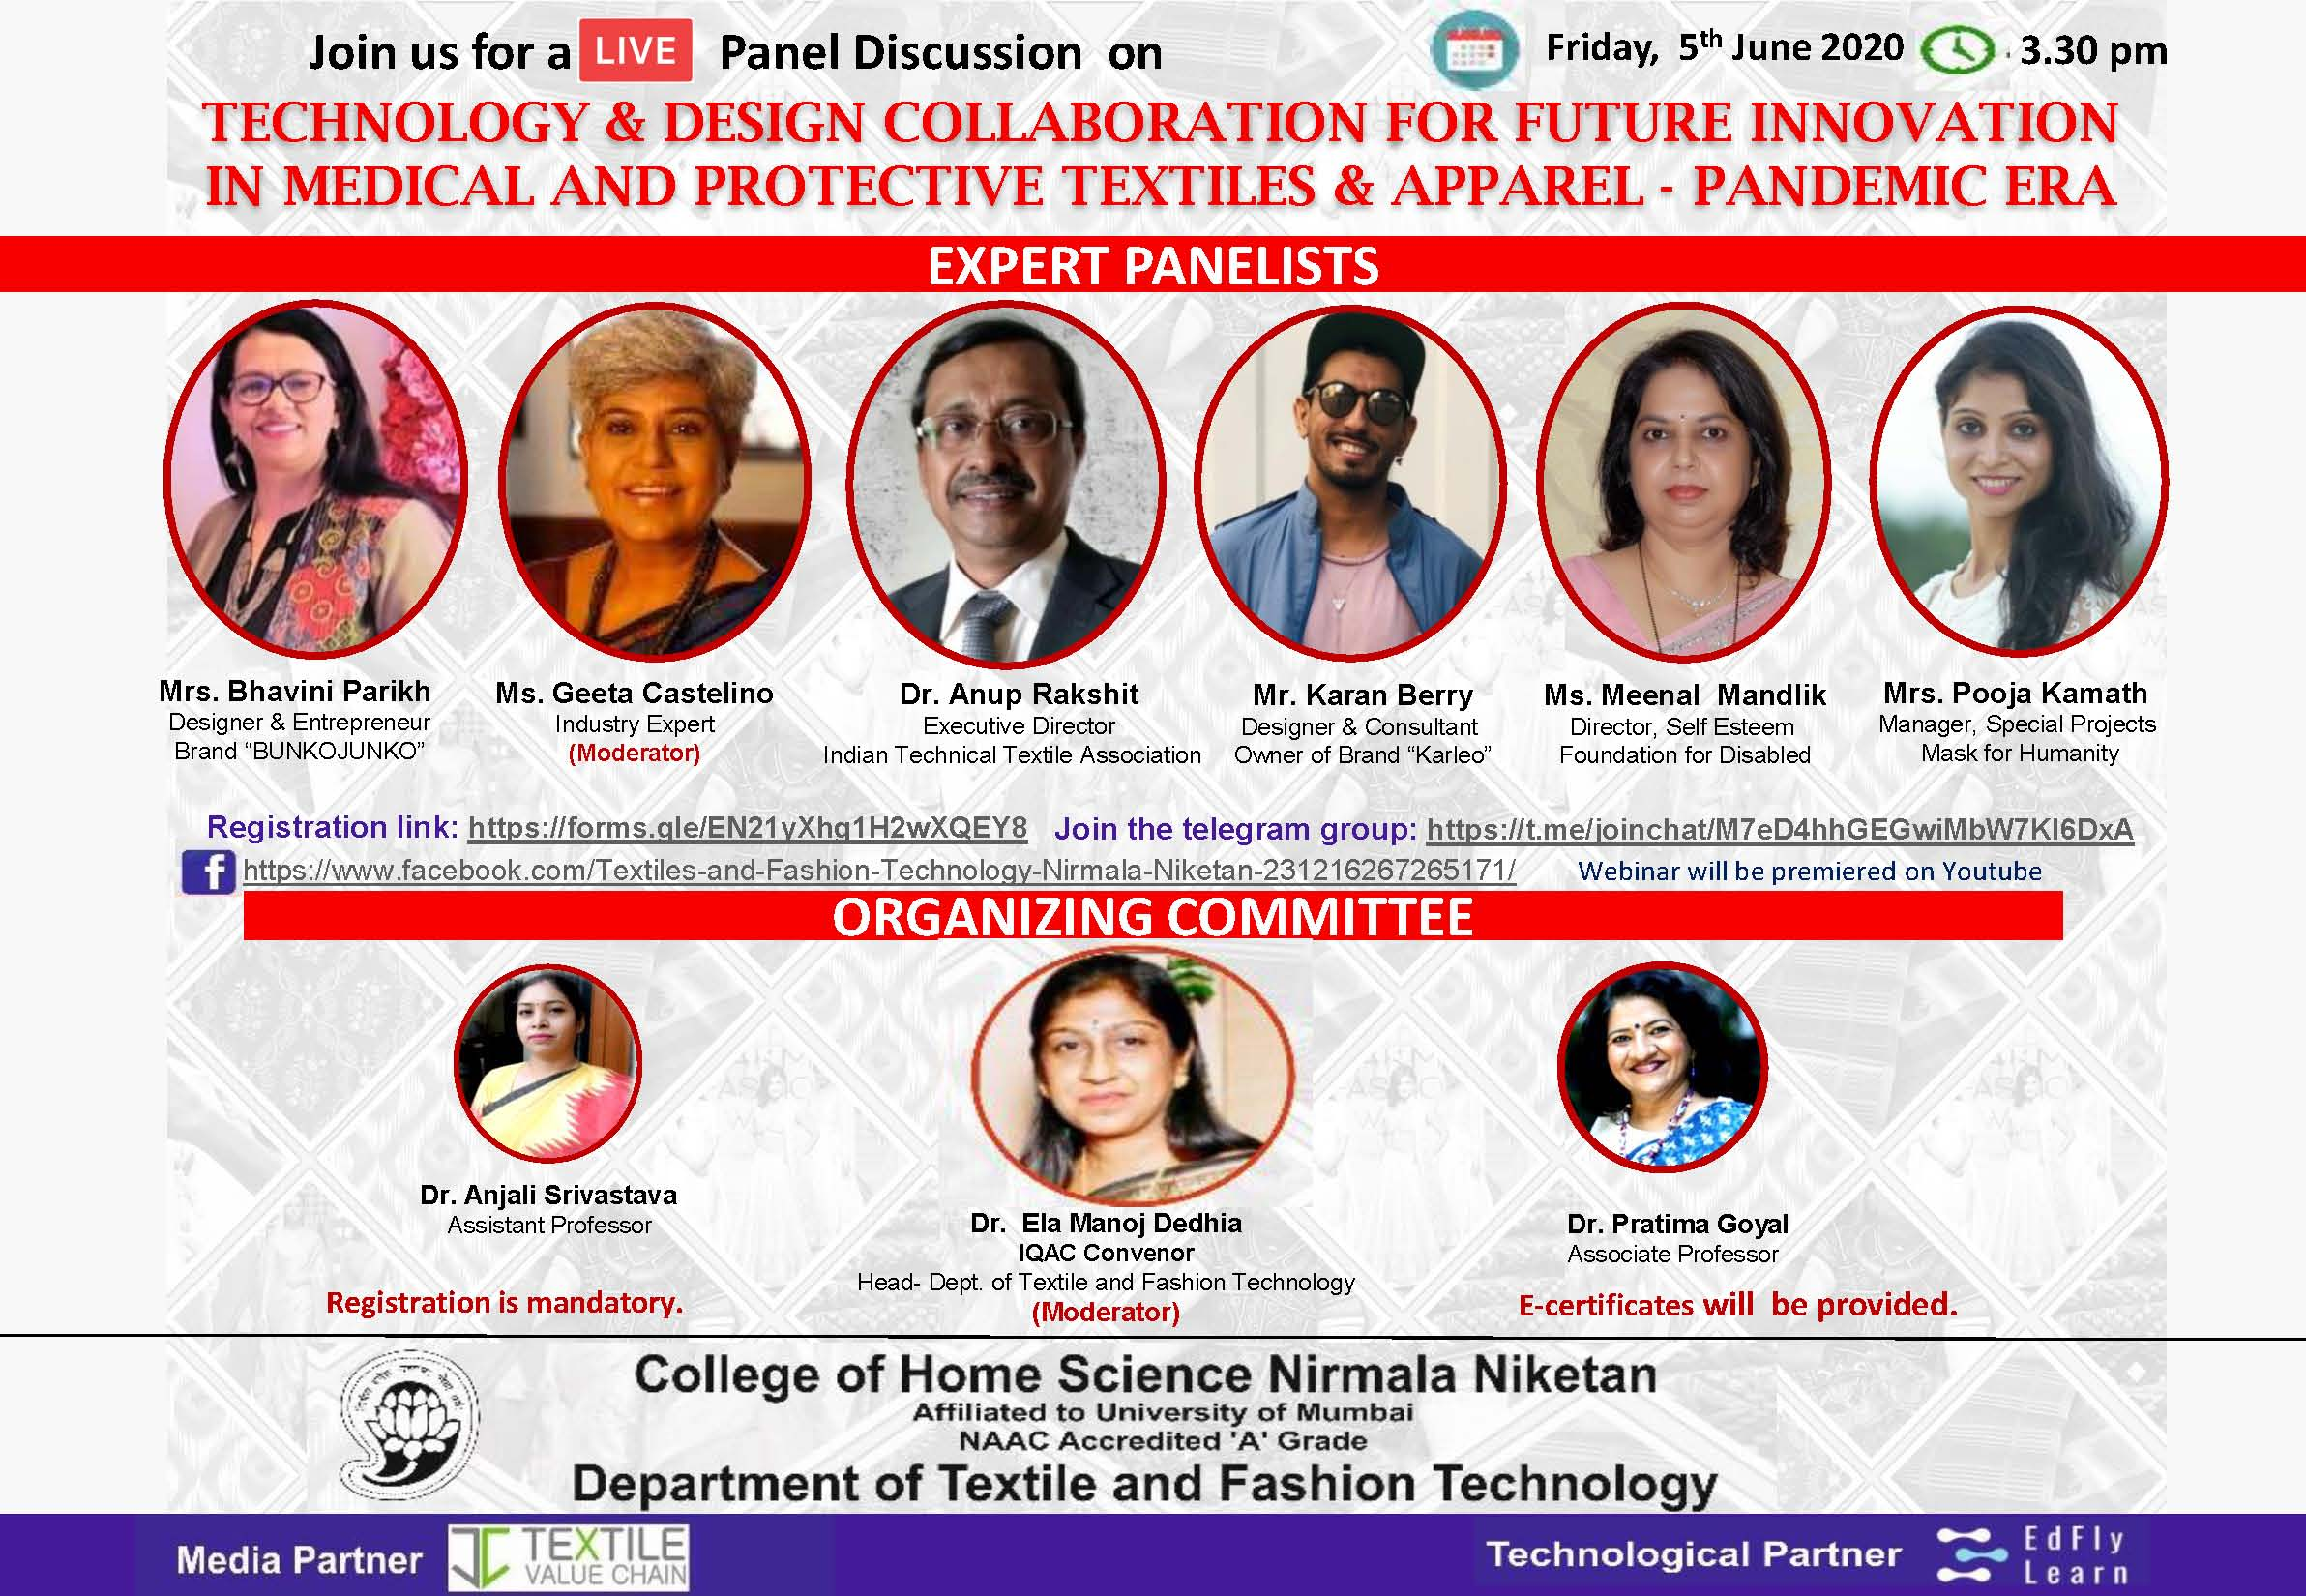 5th June, 2020 Technology and Design Collabration